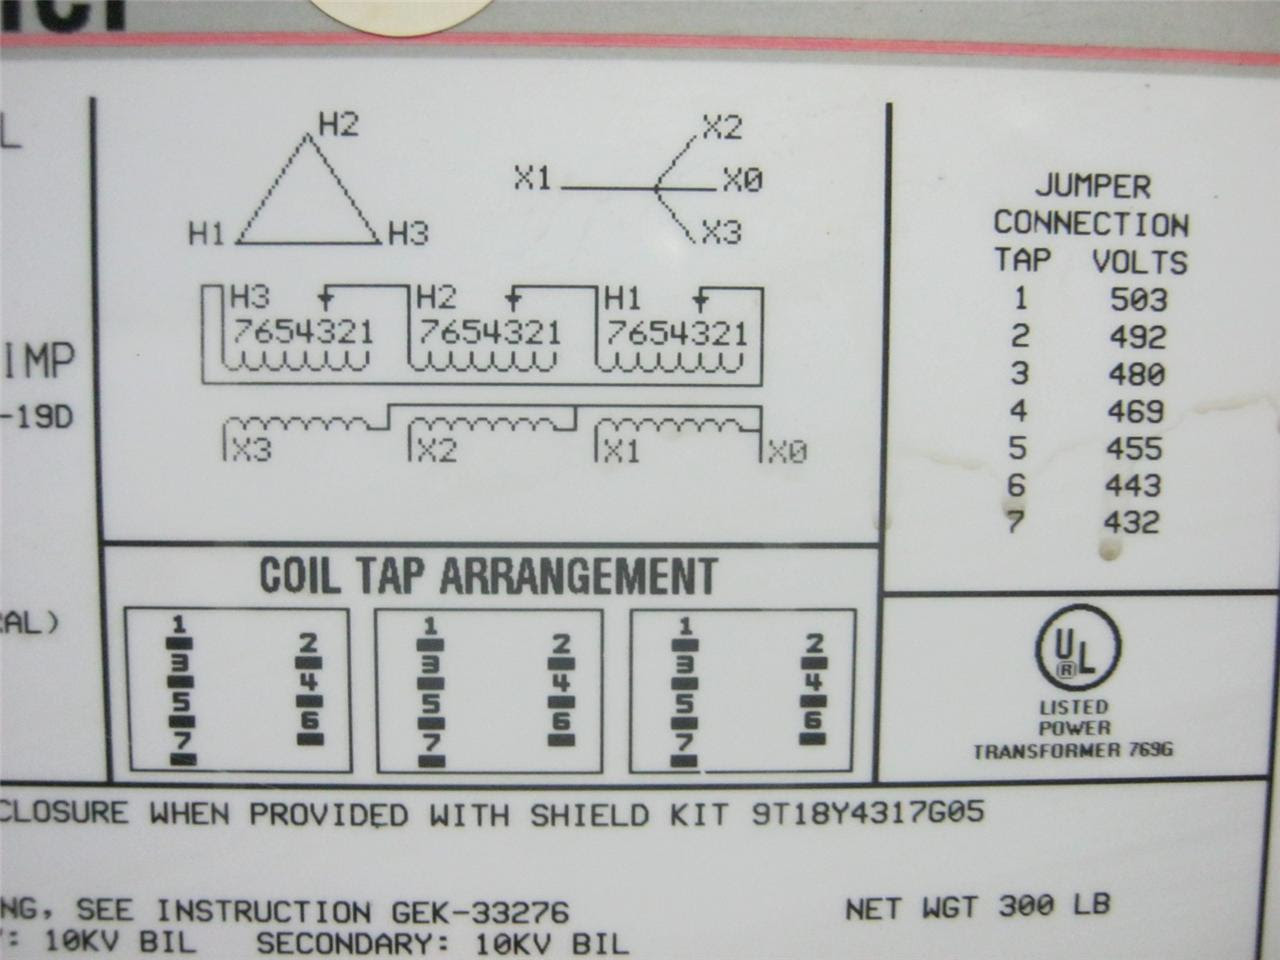 18 Lovely Buck Boost Transformer 208 To 240 Wiring Diagram